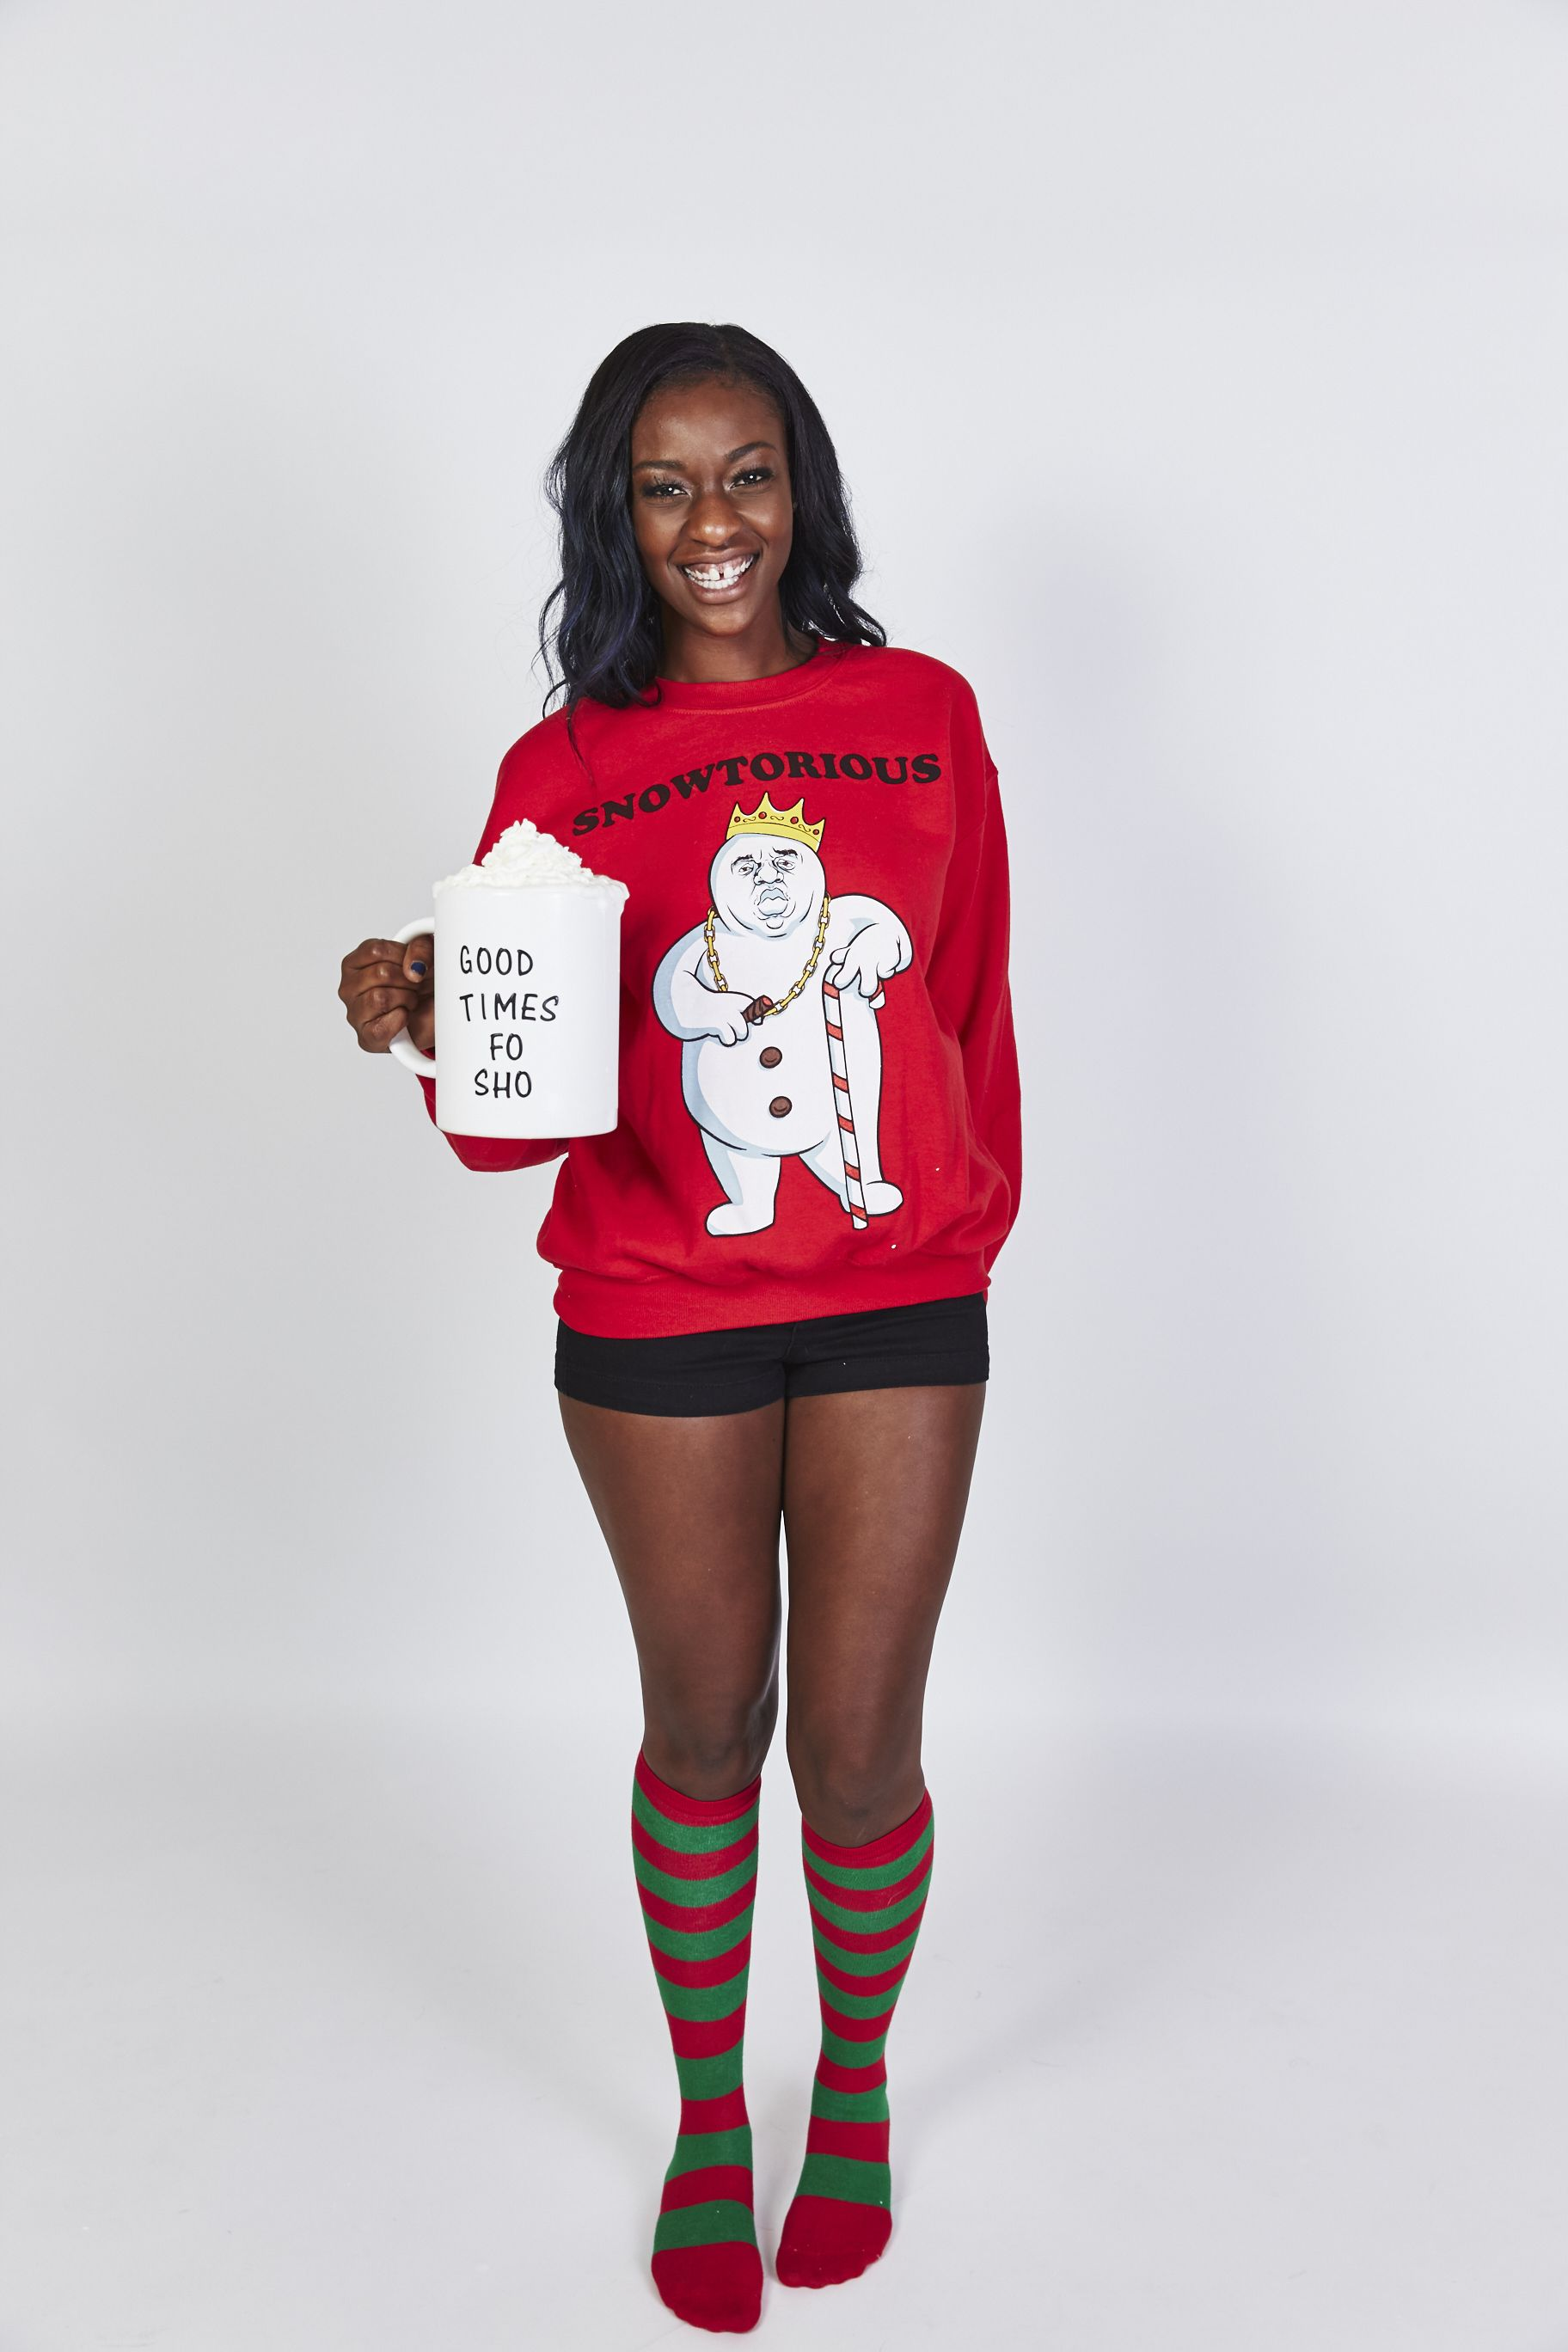 notorious biggie smalls lives on fun ugly christmas sweater for men or women